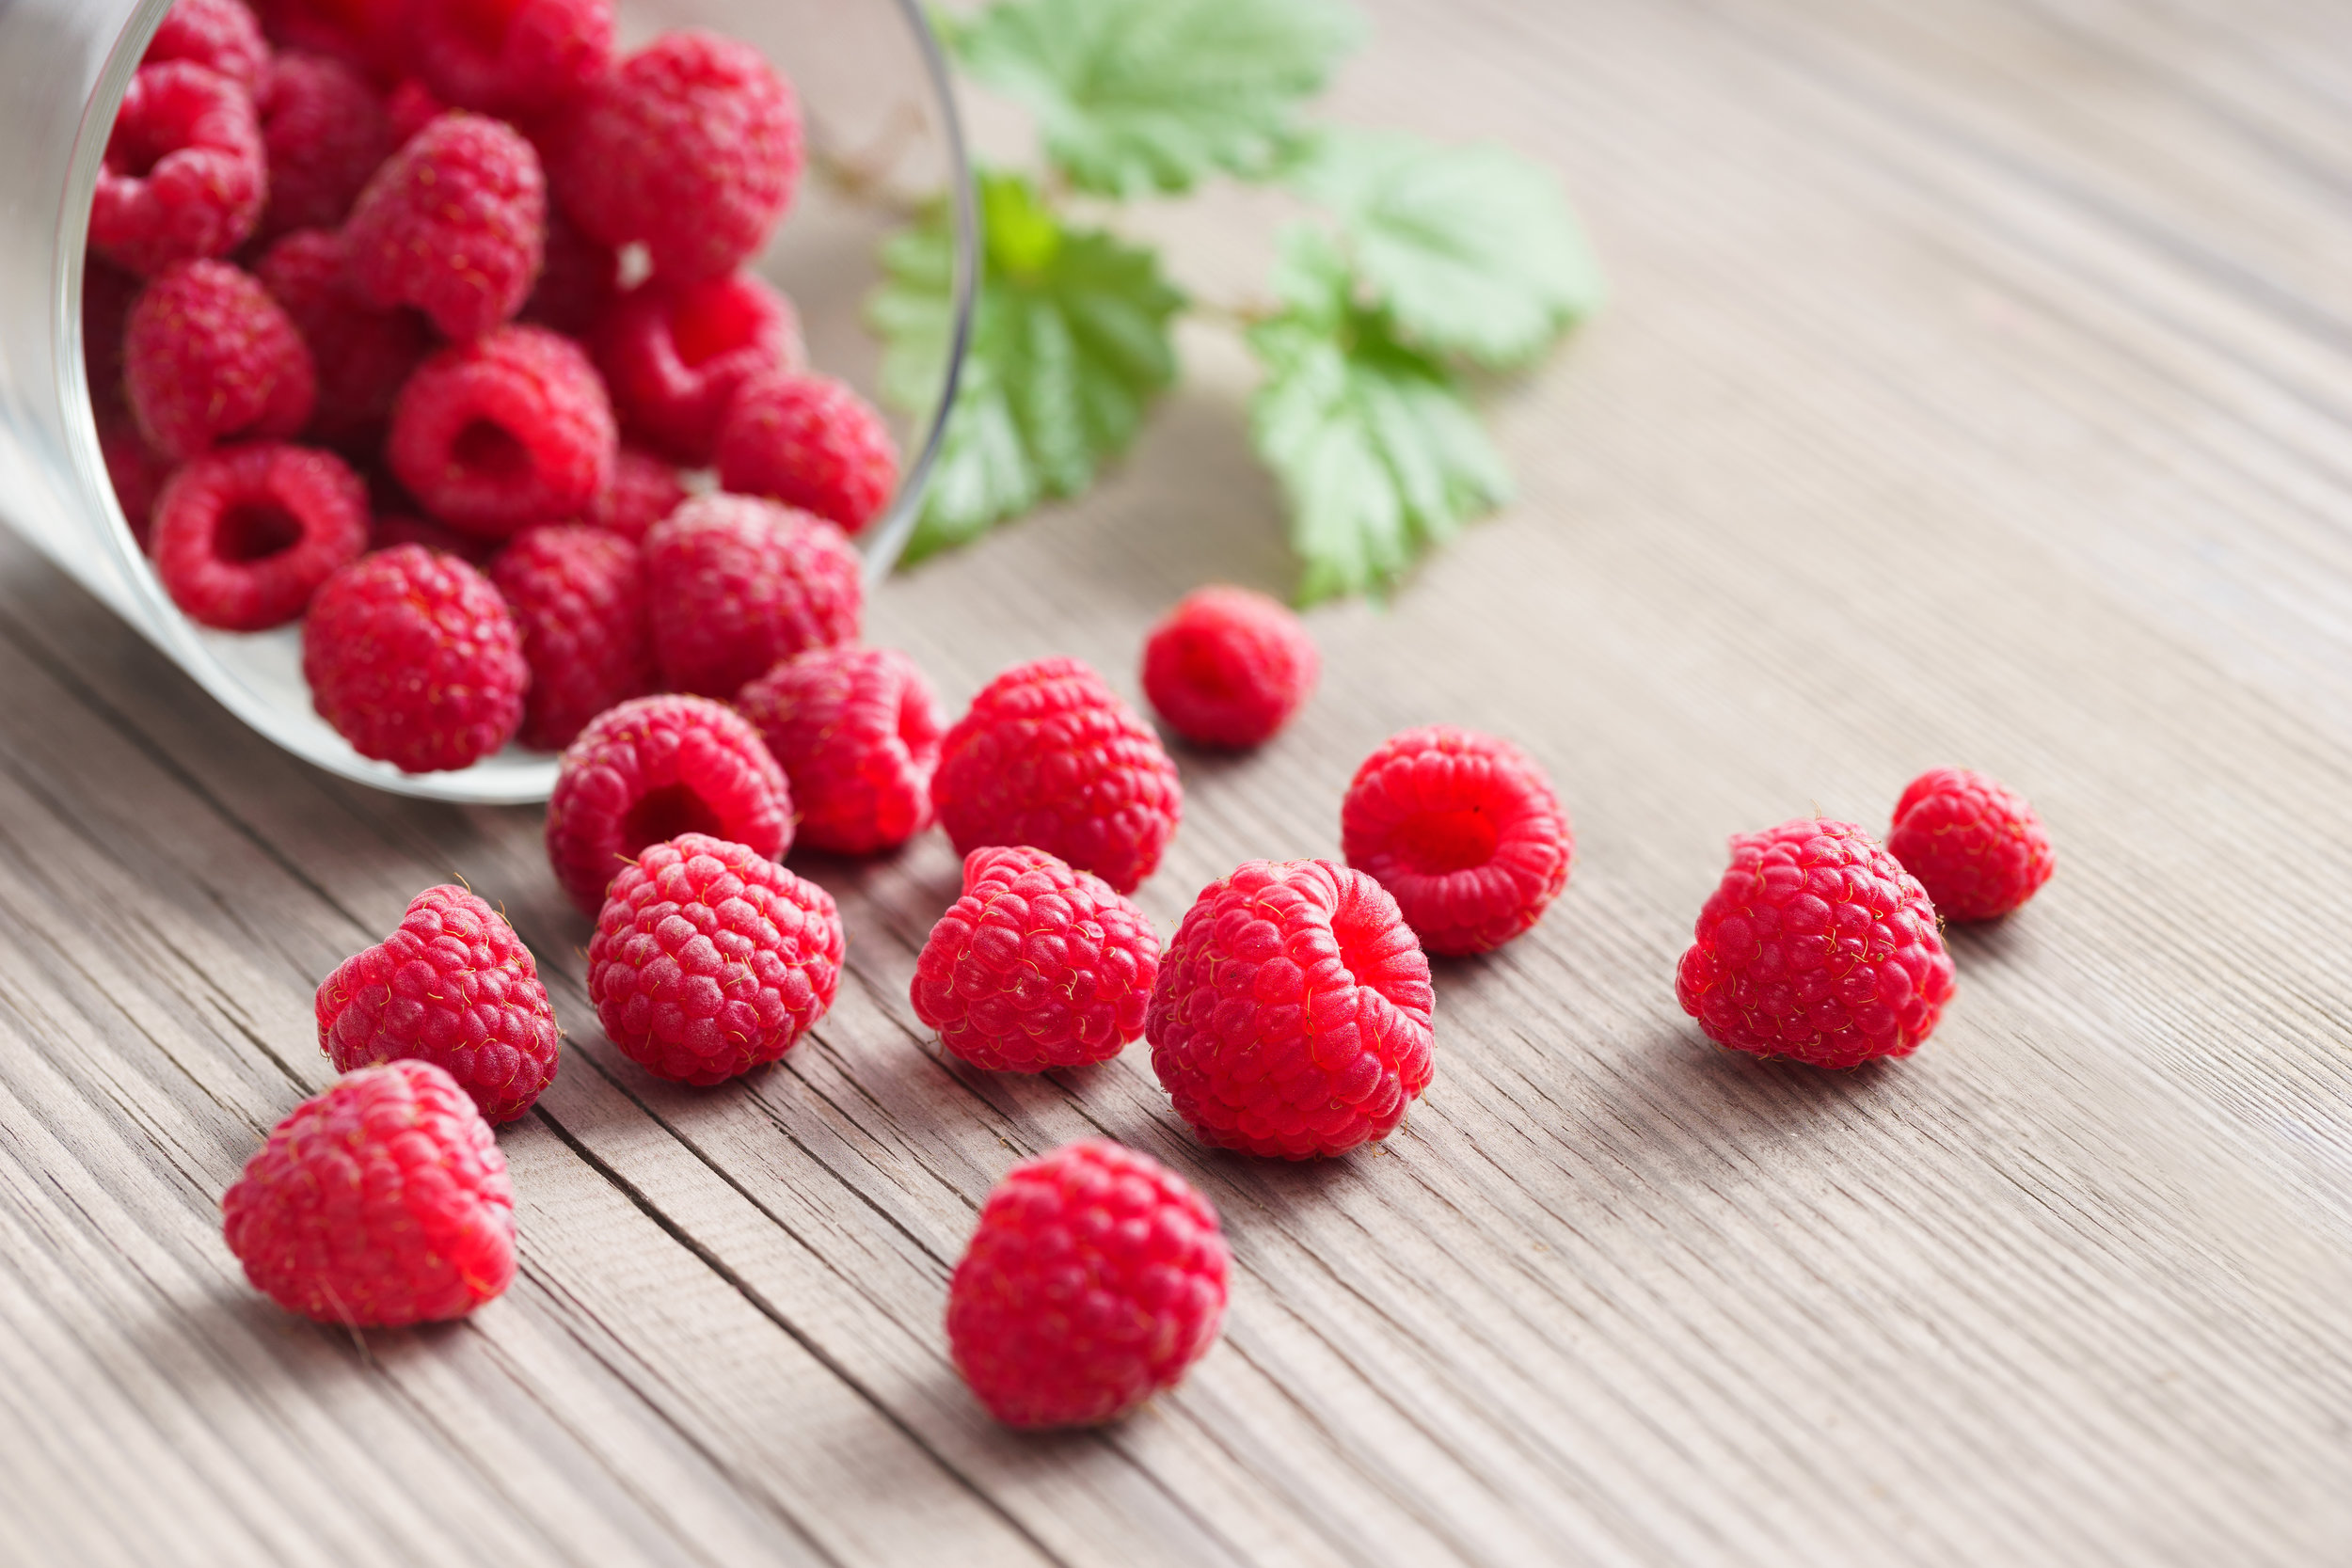 Fresh-raspberries-in-bowl-on-wooden-table.-521496404_6000x4000.jpeg